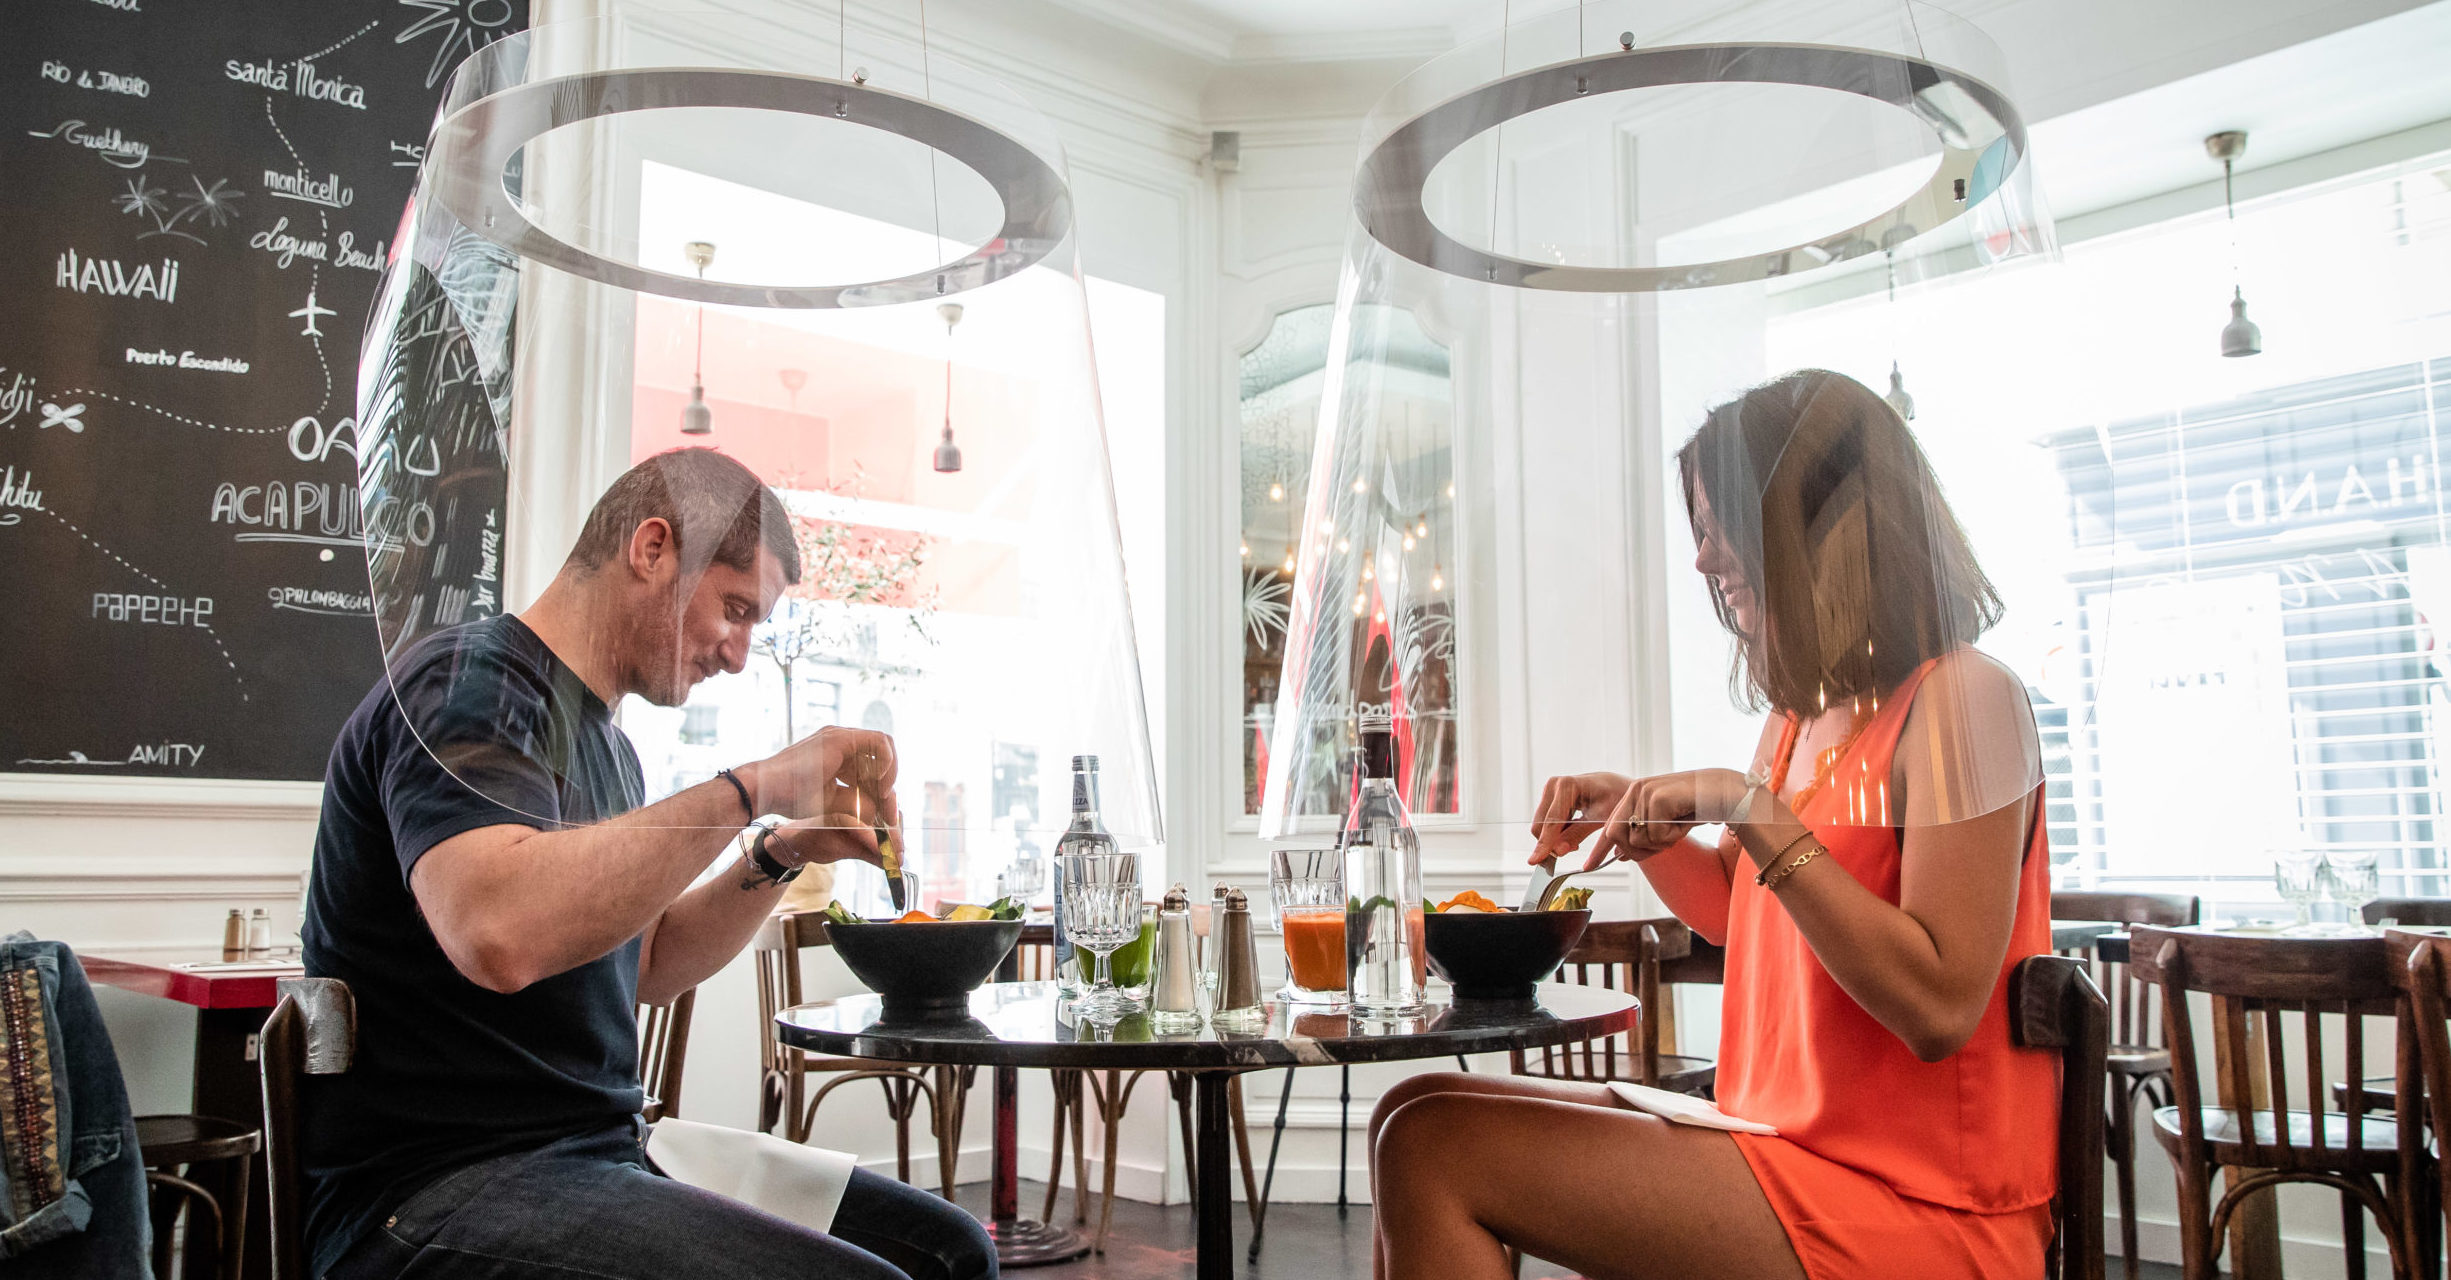 Restaurants could reopen next month with diners eating under lampshade-like plexiglass bubbles